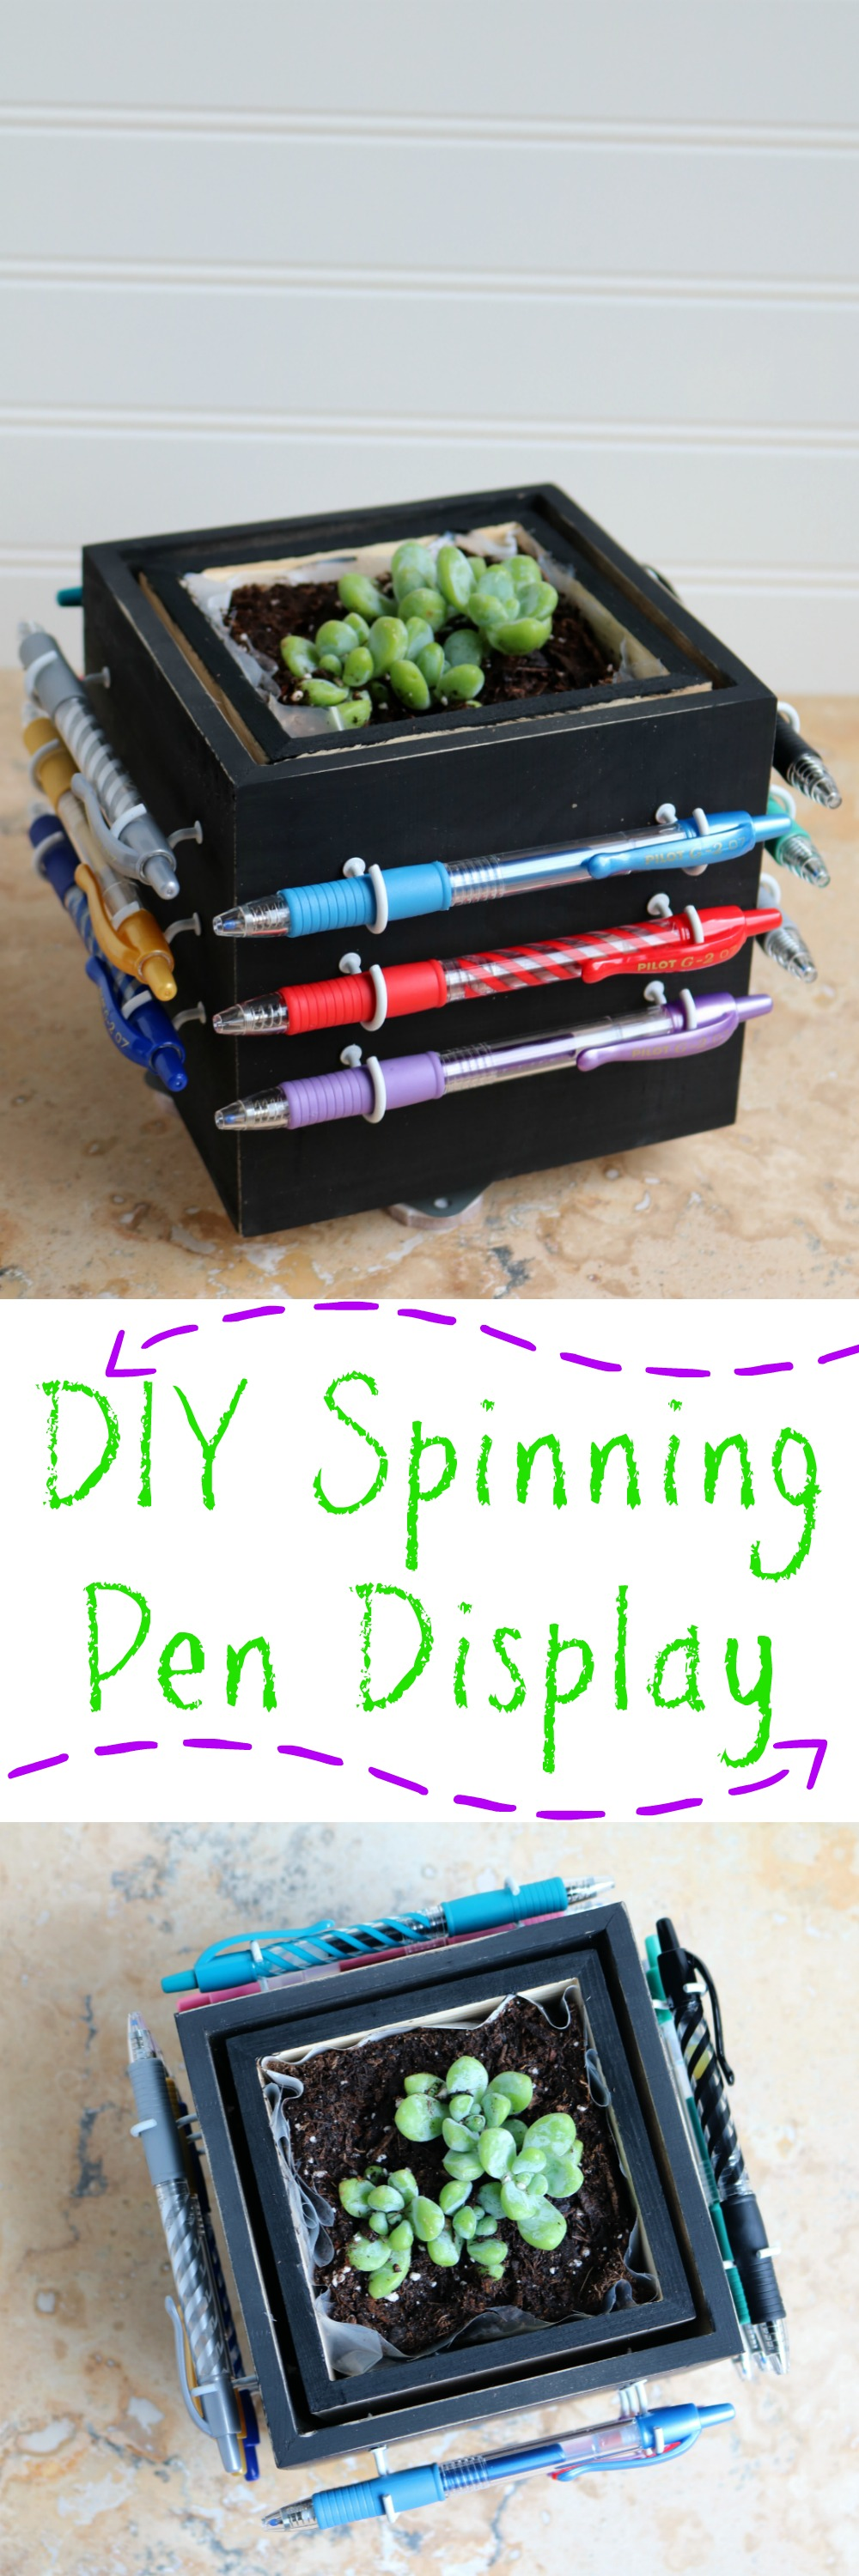 DIY Spinning Pen Display